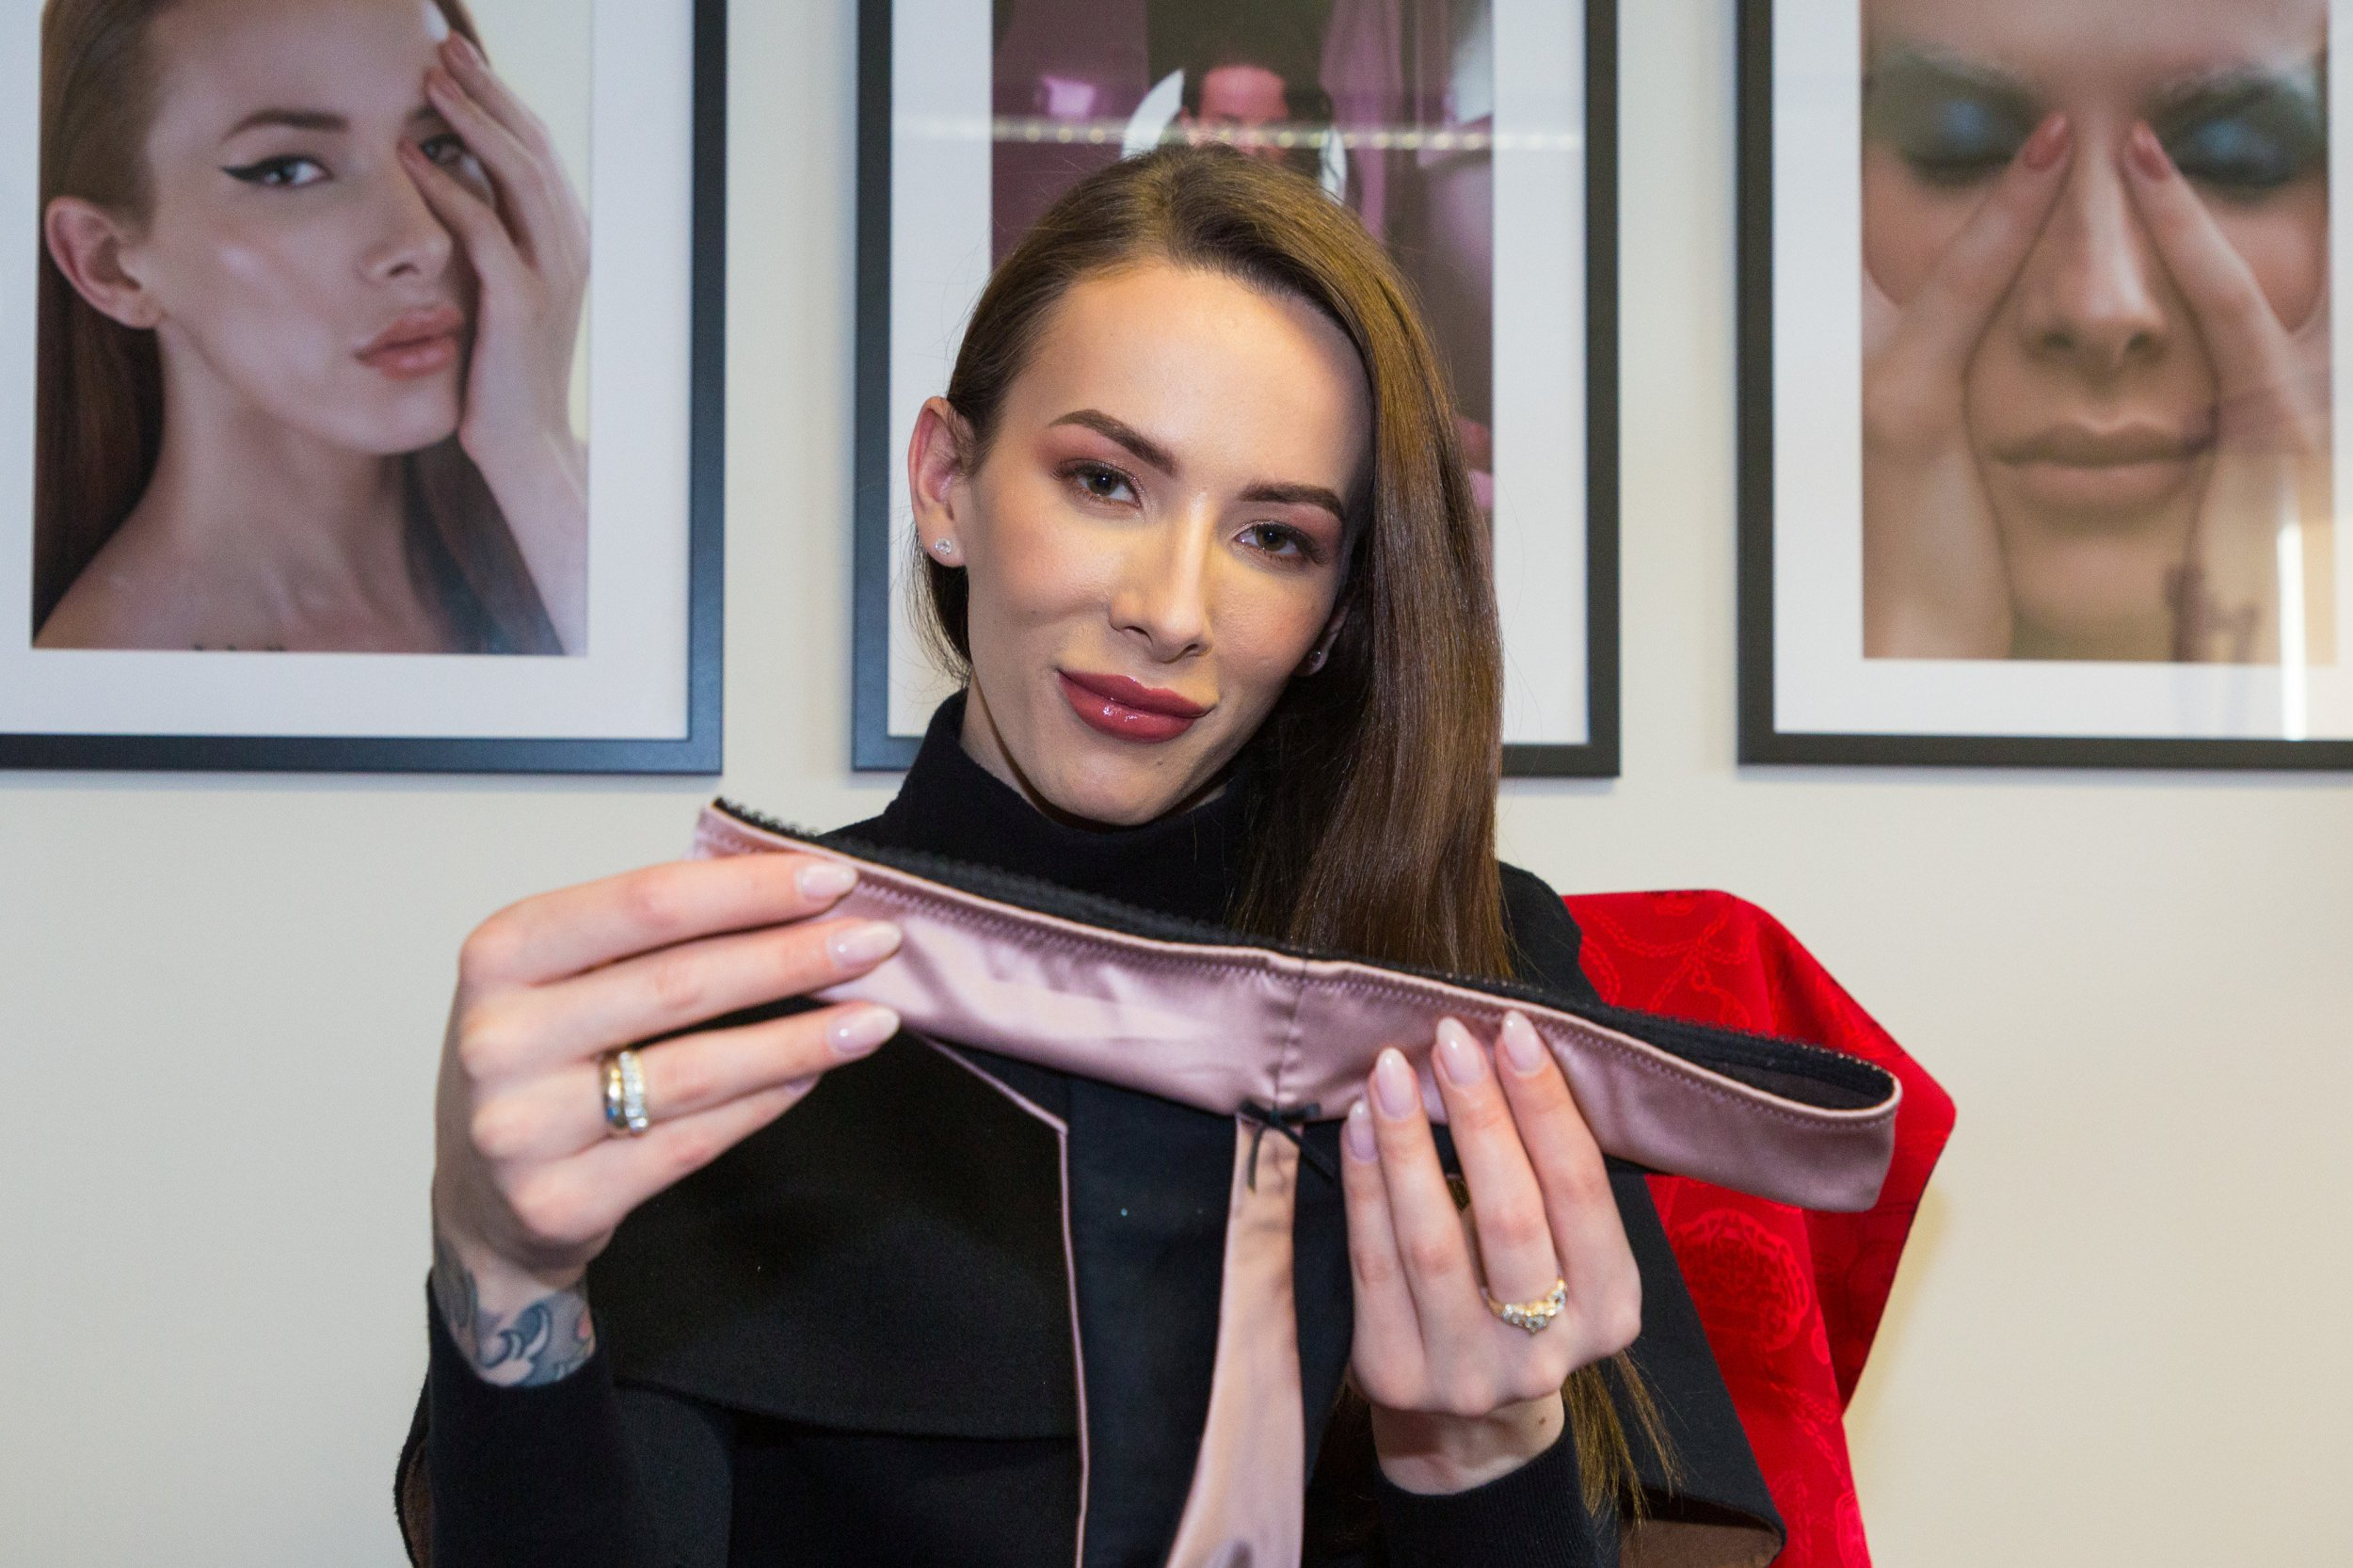 Londoner creates lingerie brand for transgender women